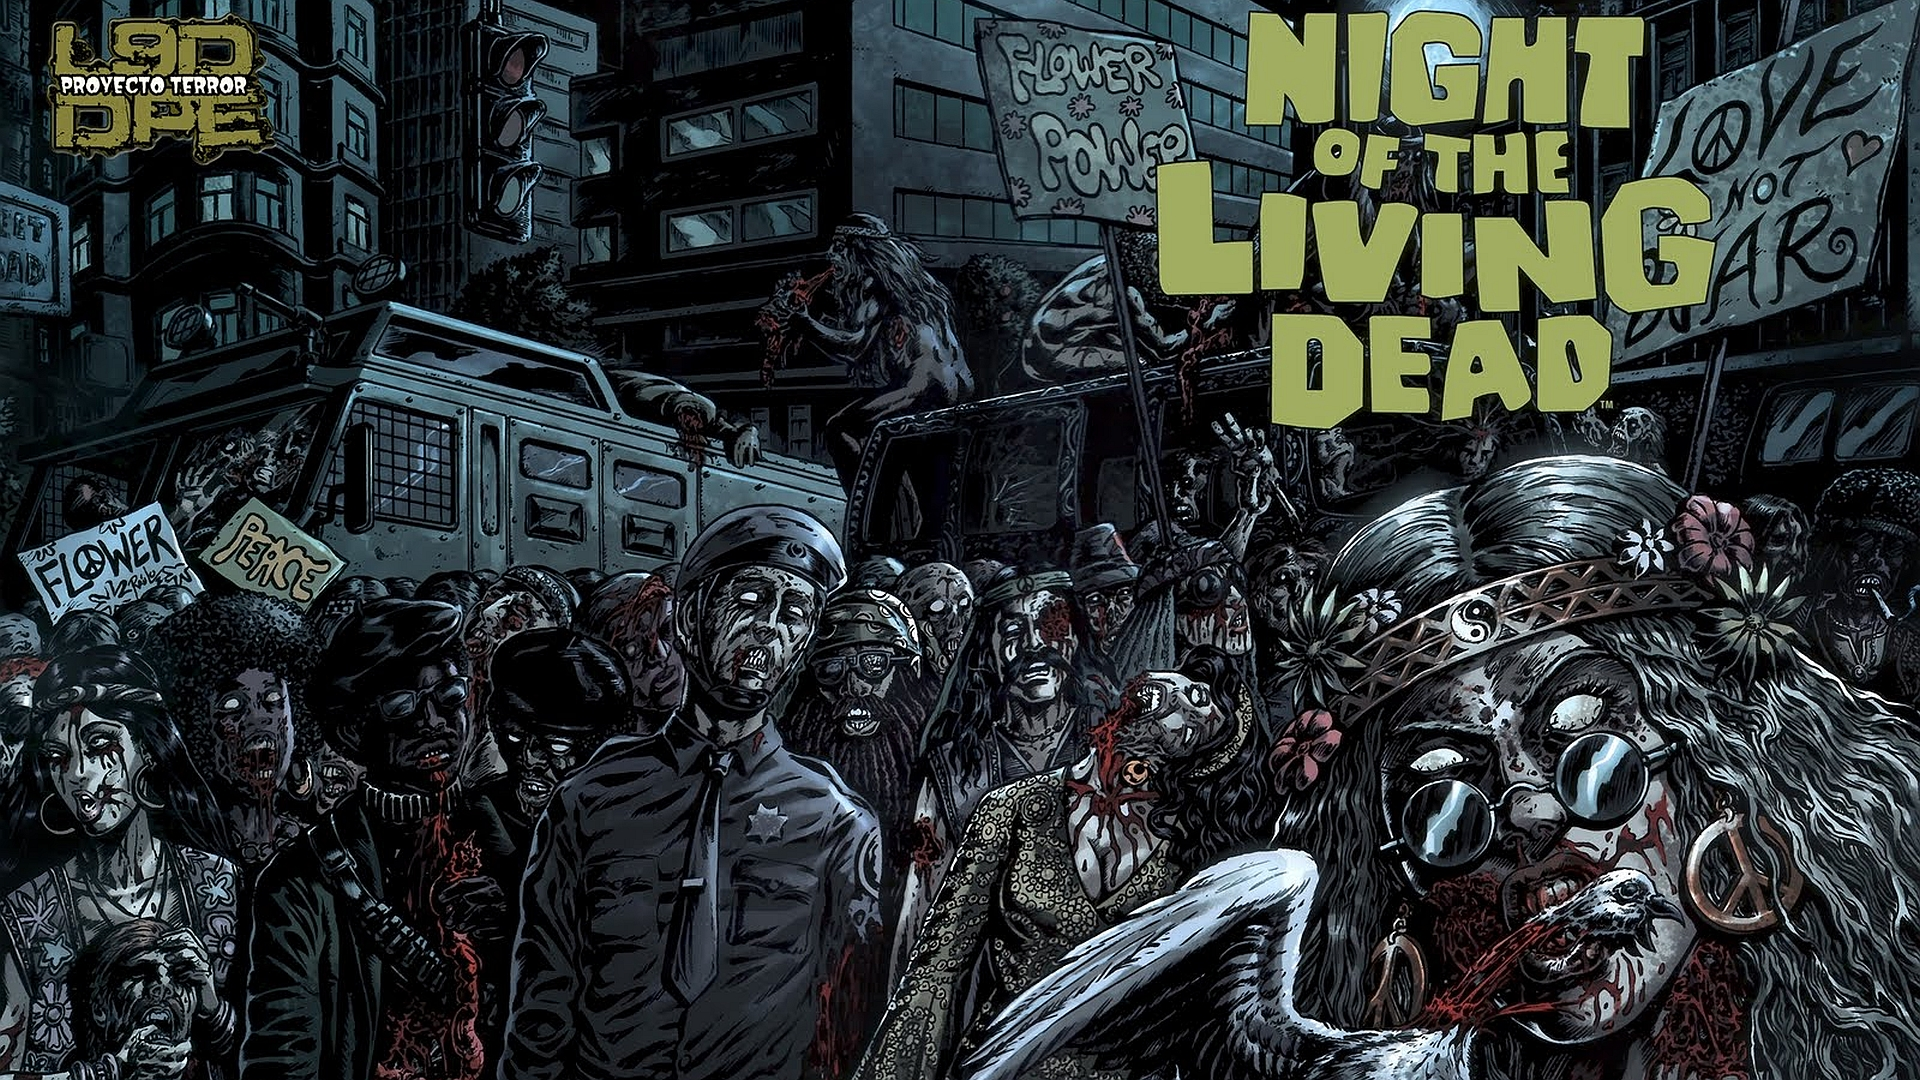 Night Of The Living Dead Hd Wallpaper Background Image 1920x1080